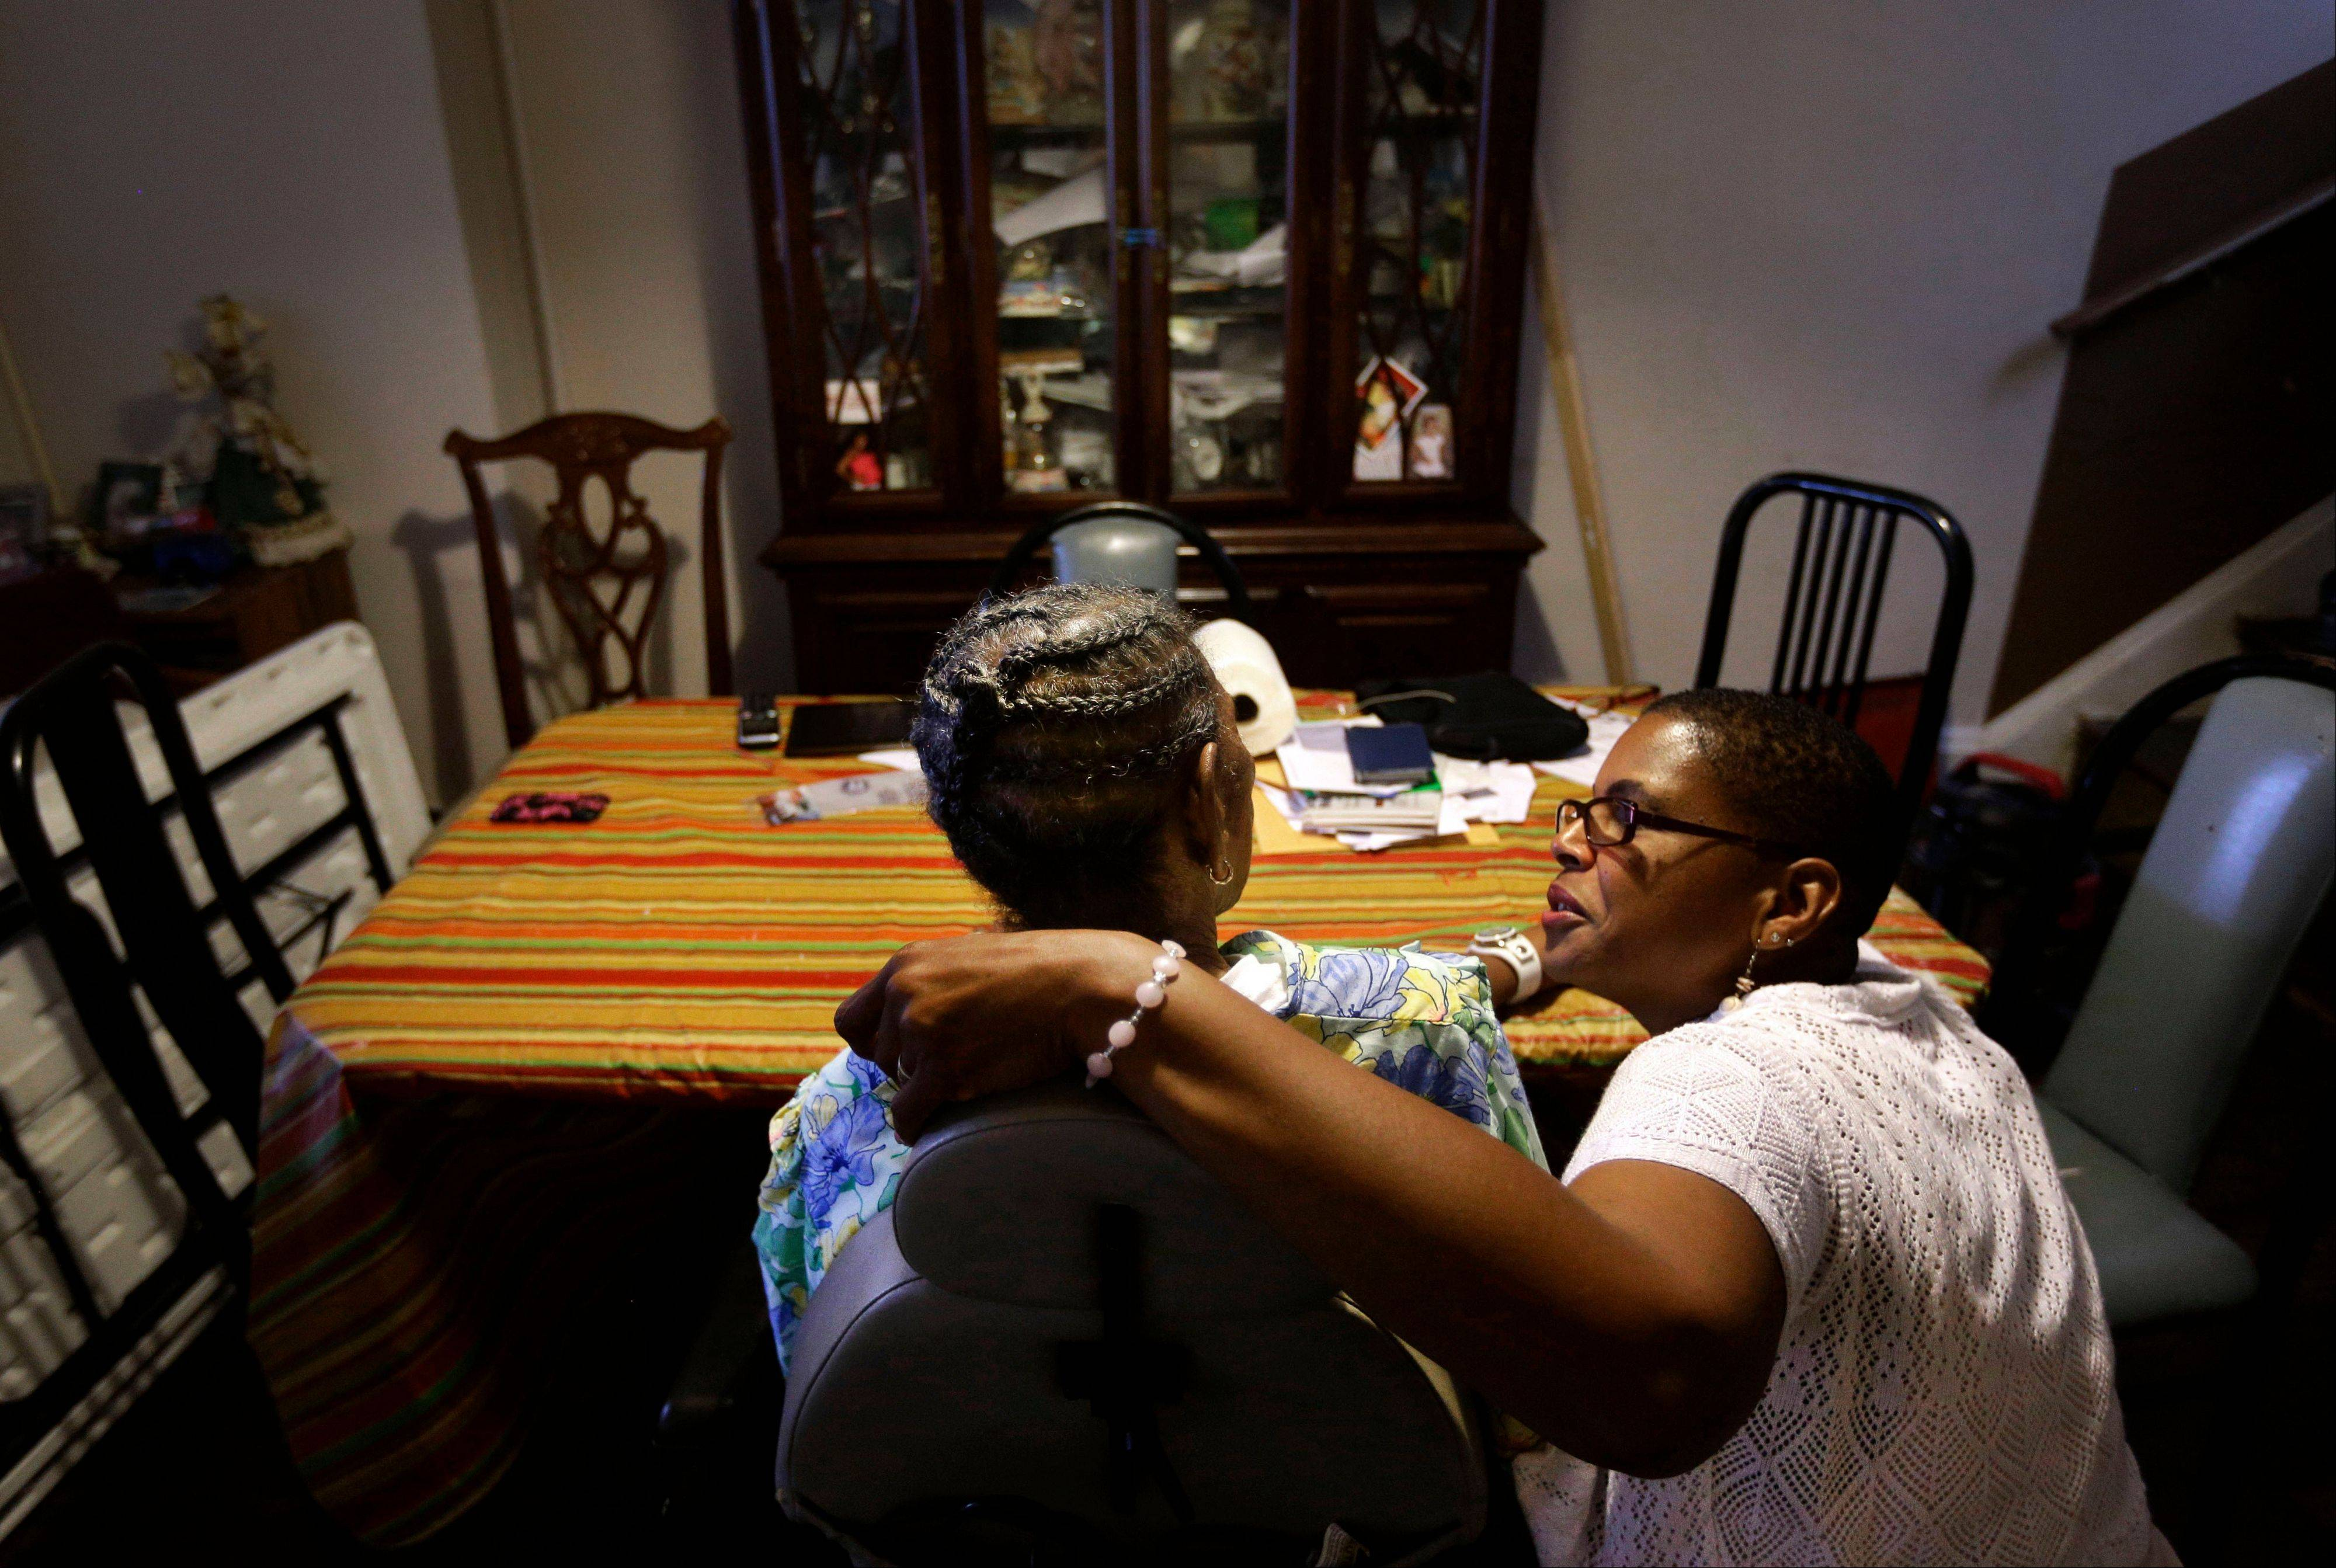 Occupational therapist Ally Evelyn-Gustave, right, speaks with Alberta Hough, who suffers from Parkinson�s disease, in Hough�s home in Baltimore. Hough struggles to feed herself a snack, her arms shaking badly from Parkinson�s disease.